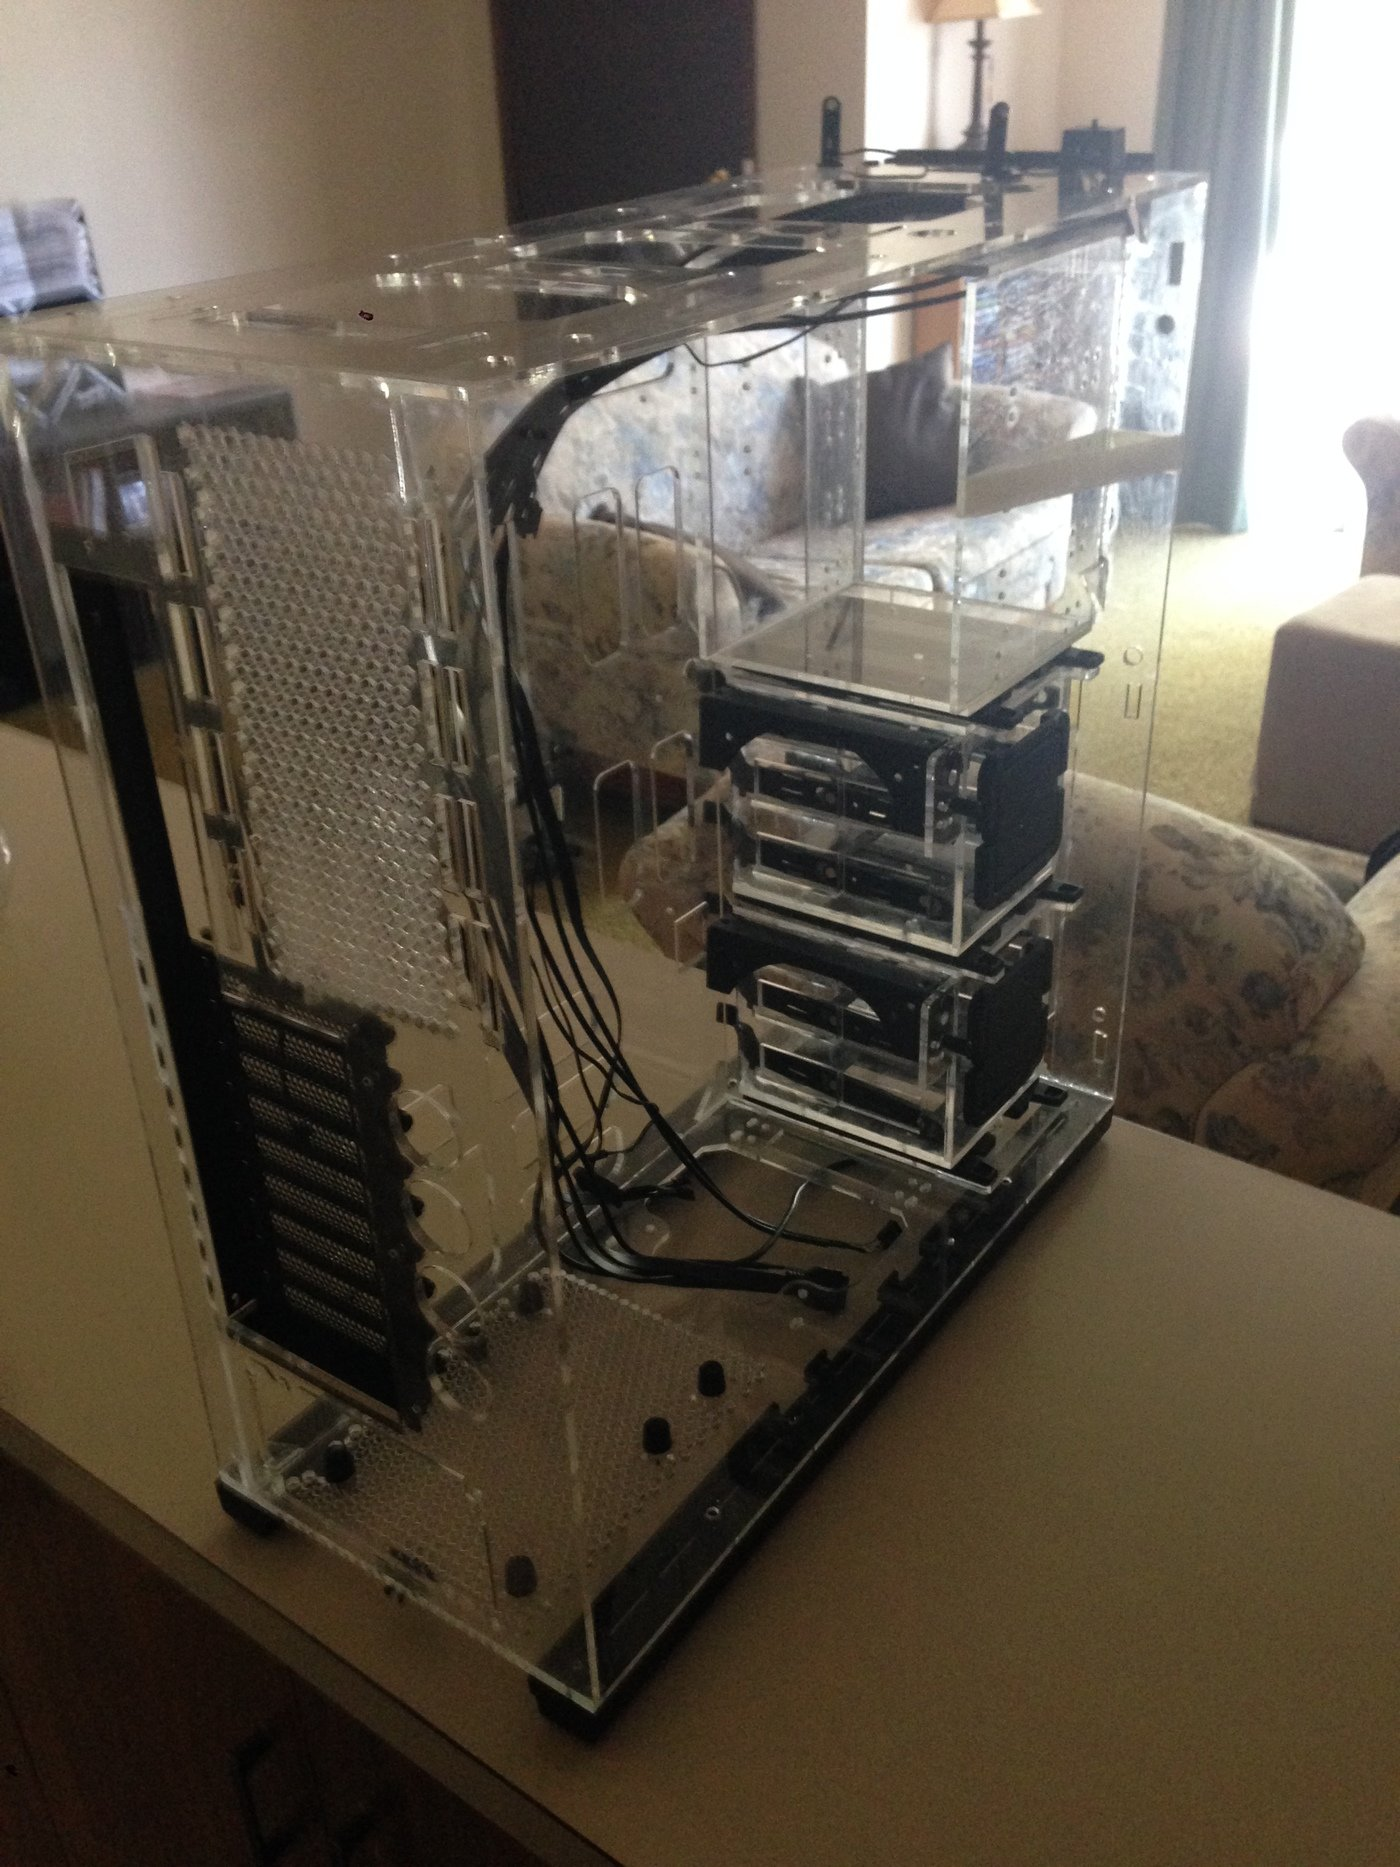 Acrylic PC case 2 by Keanu John Bullock at Coroflot com